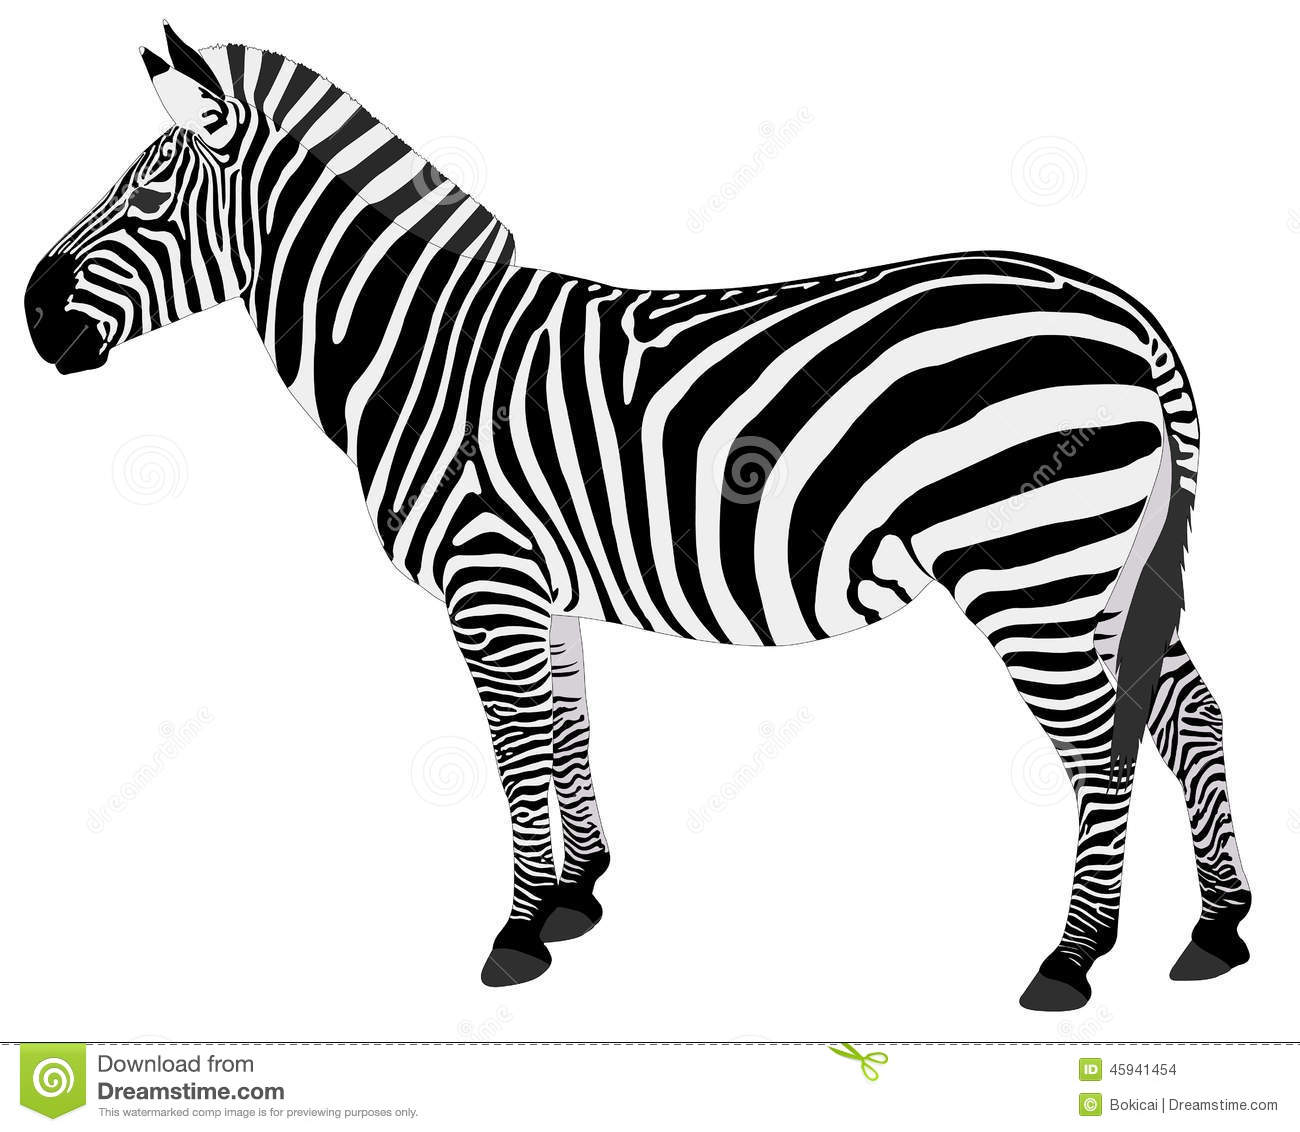 Detailed Illustration Of Zebra Stock Vector